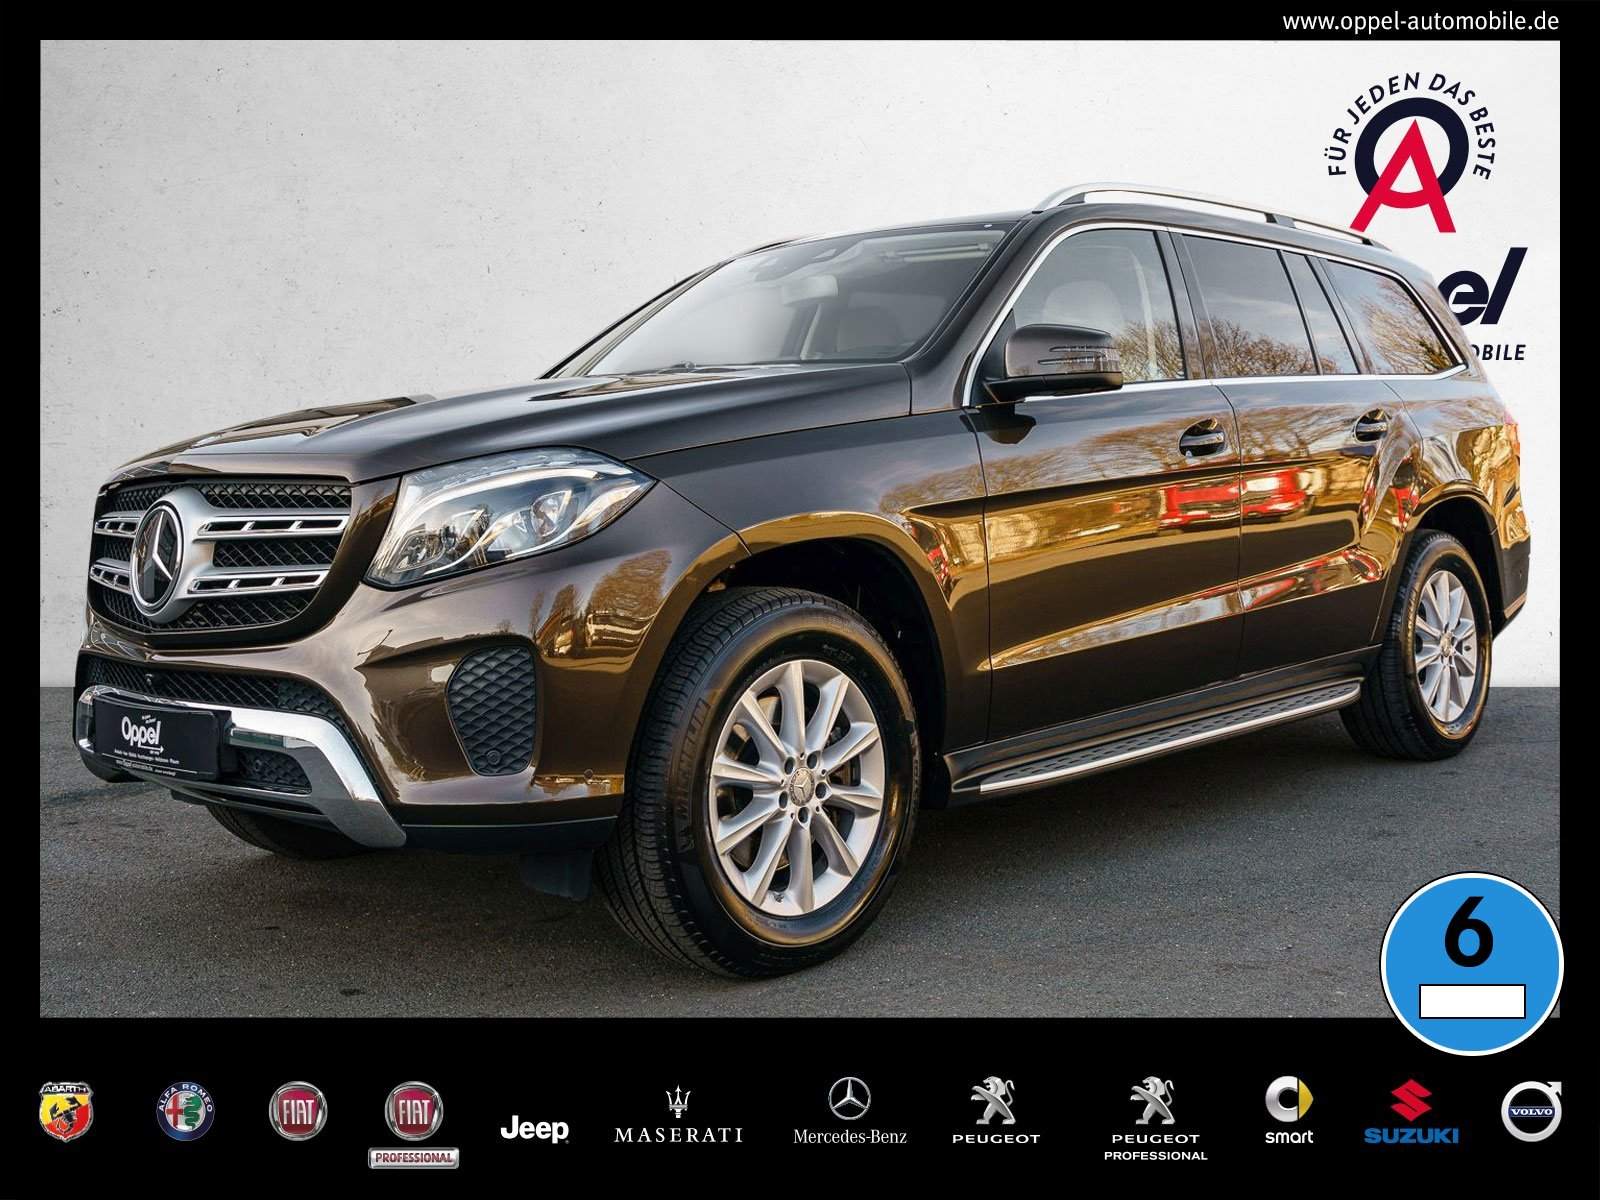 Mercedes-Benz GLS 350 BlueTEC 4M COMAND+DISTRONIC PLUS+LED+AHK, Jahr 2016, Diesel